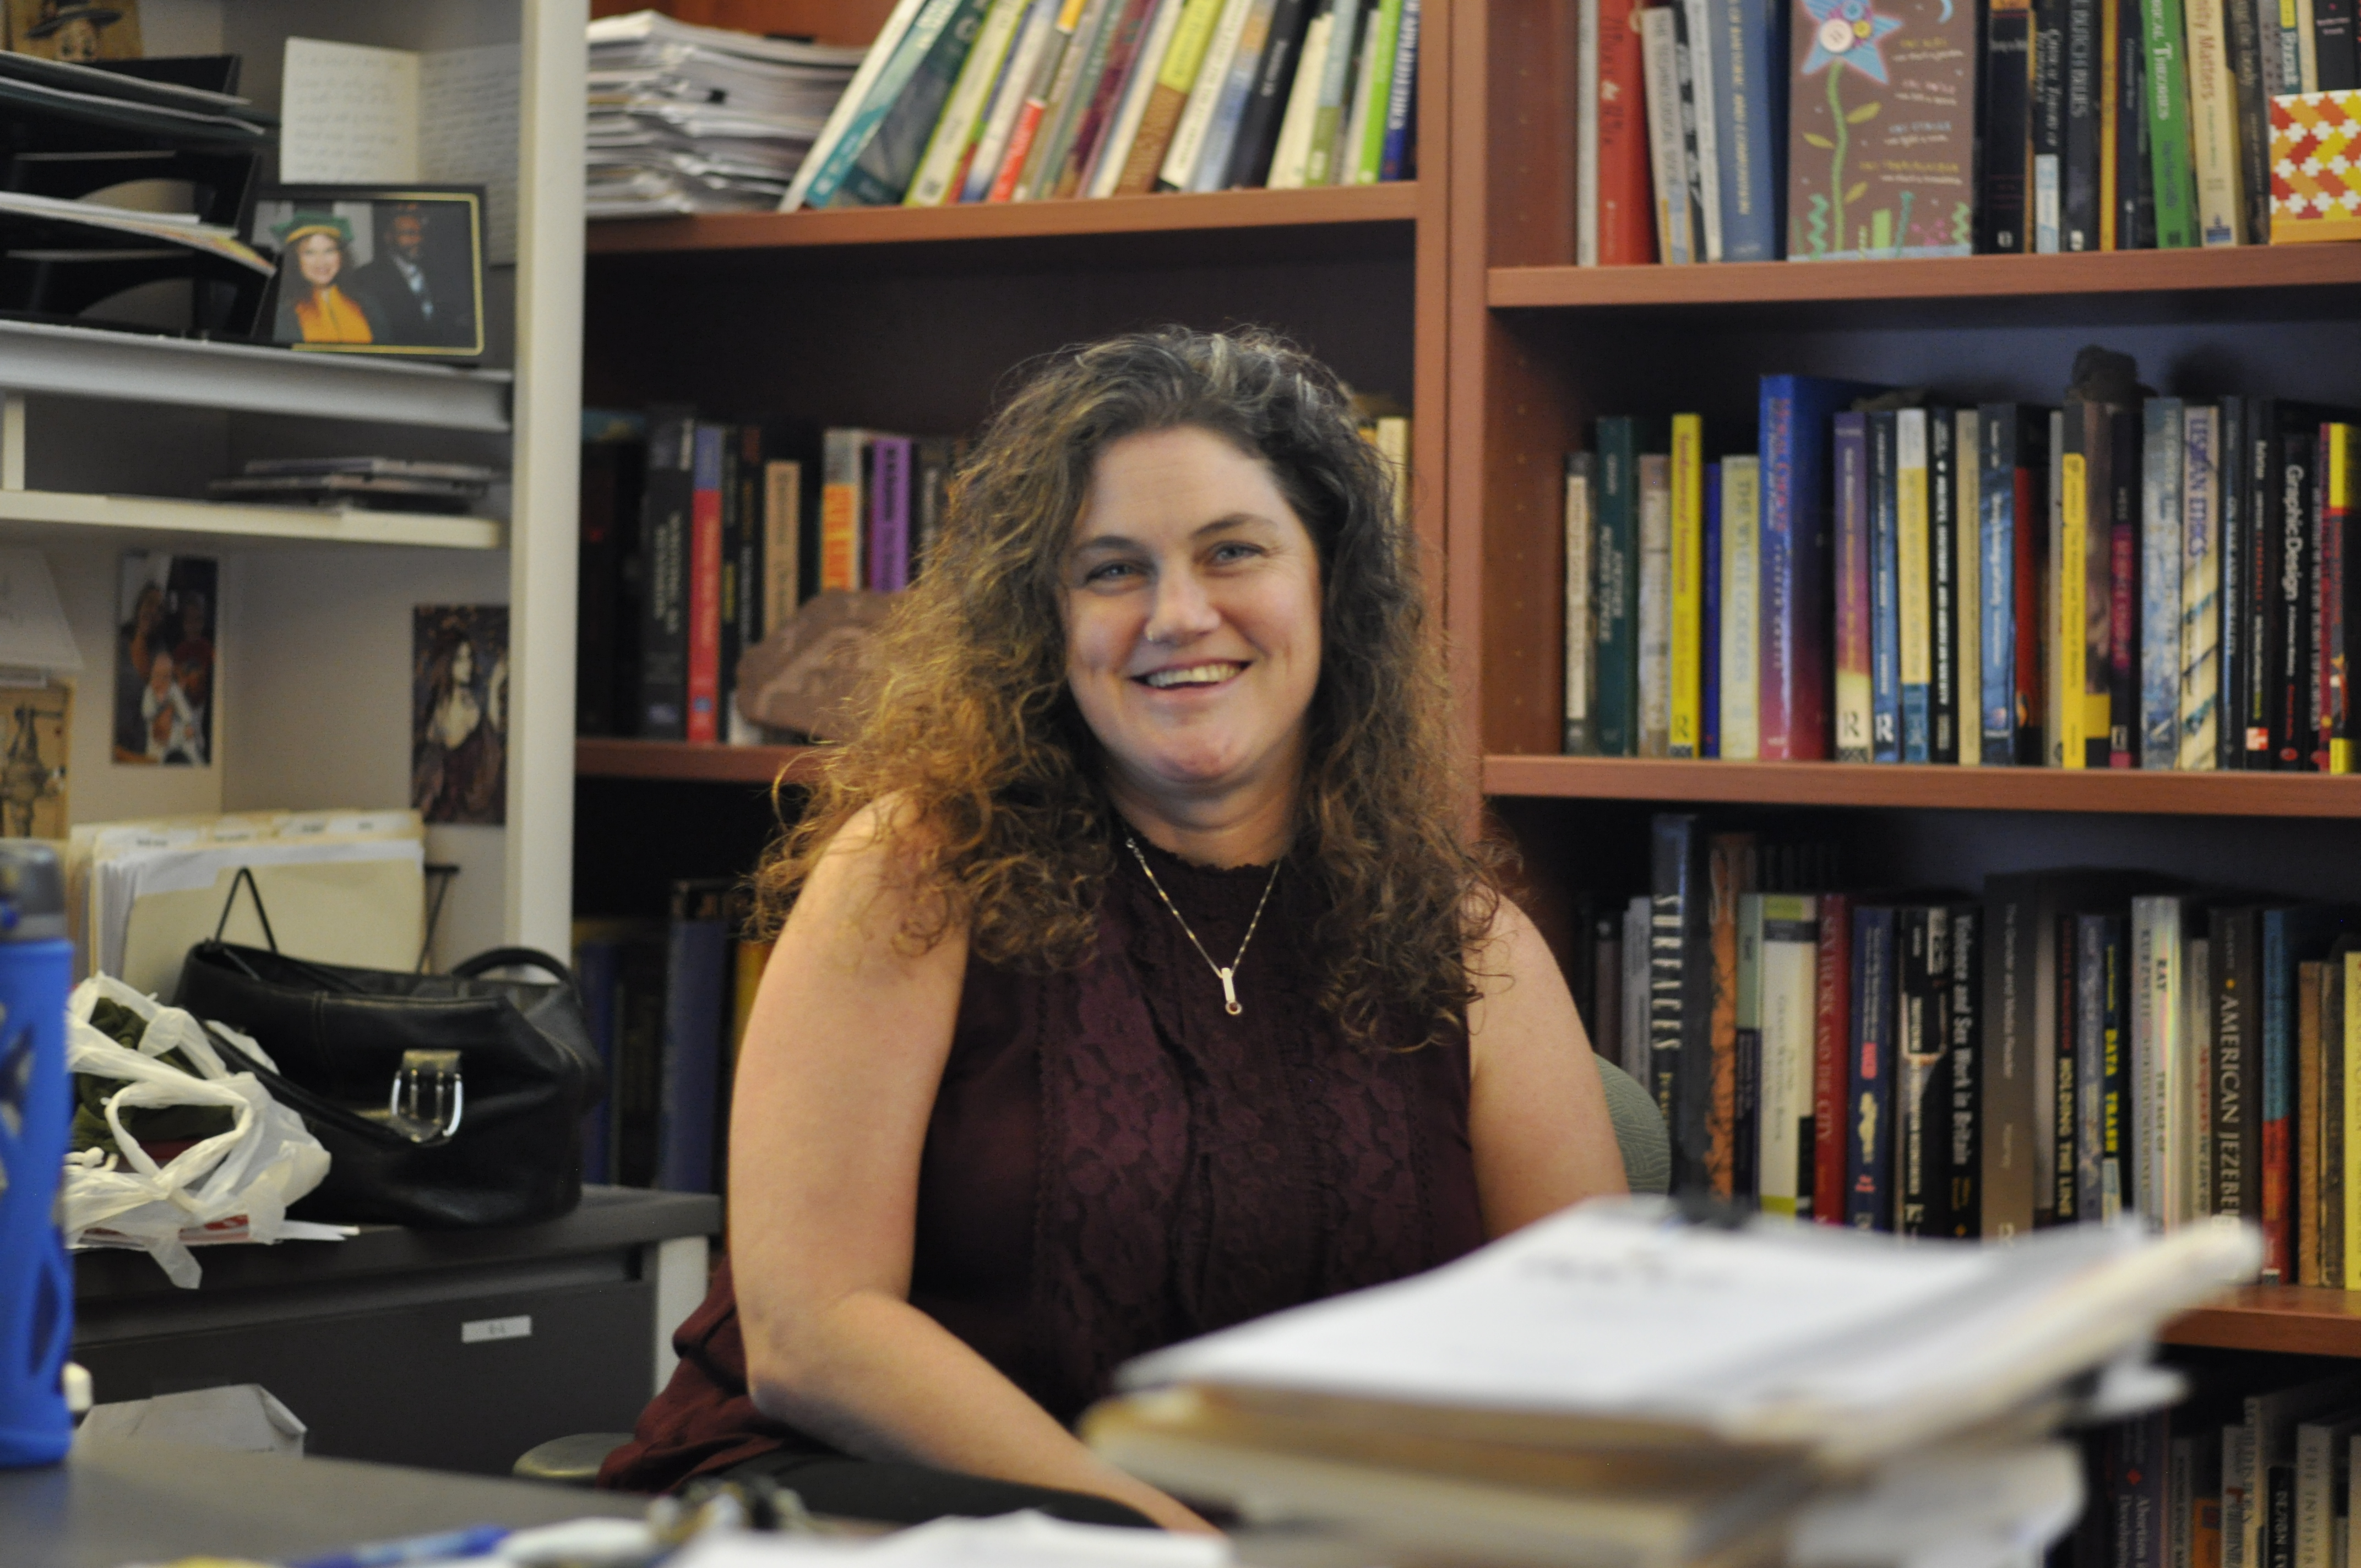 Faculty calls out administration on sexual harassment policies